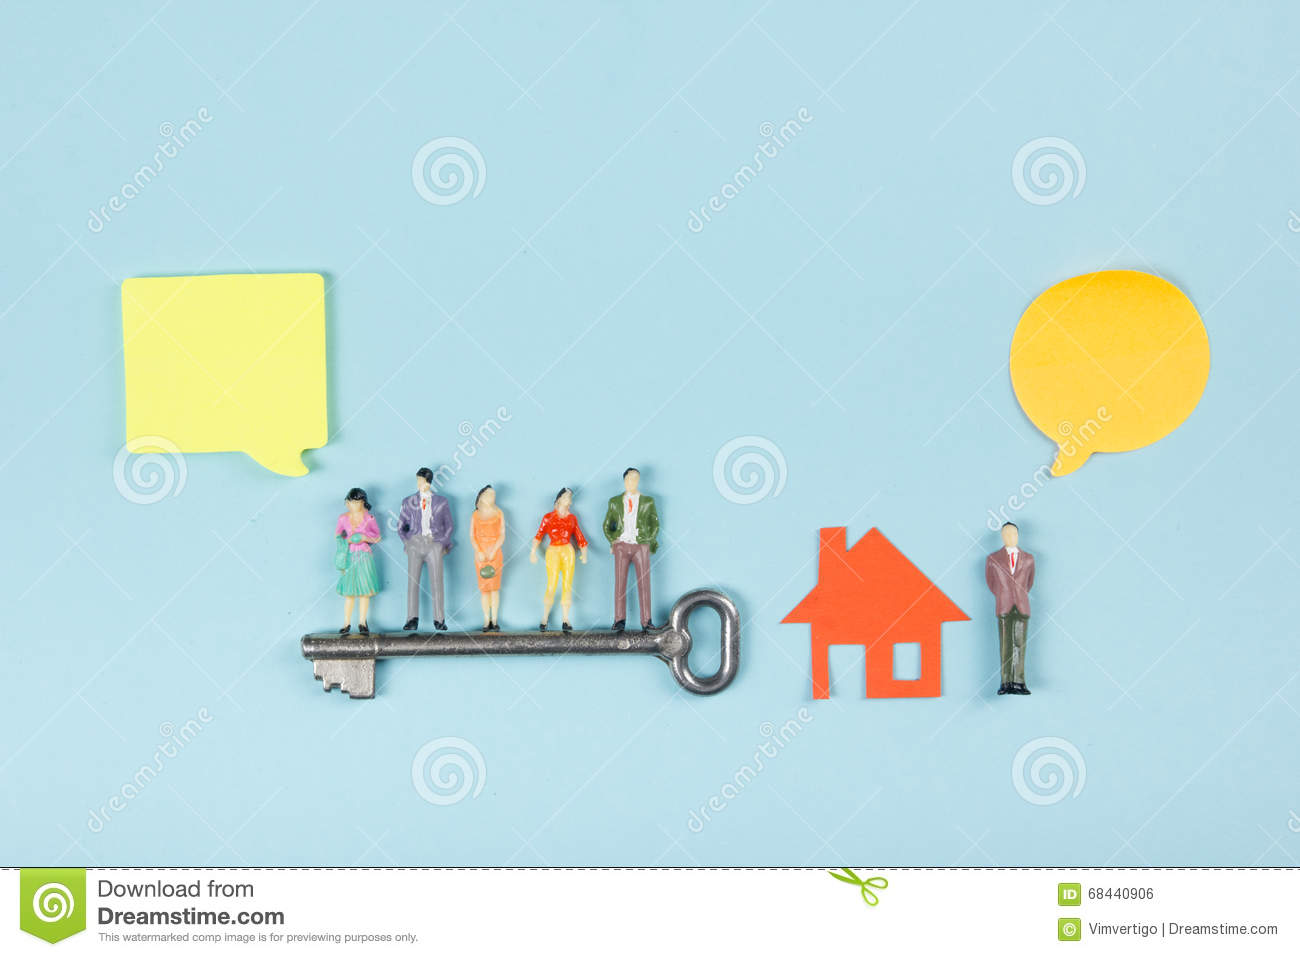 Text Bubble Toys For Tots : Real estate concept speech bubbles and people toy figures